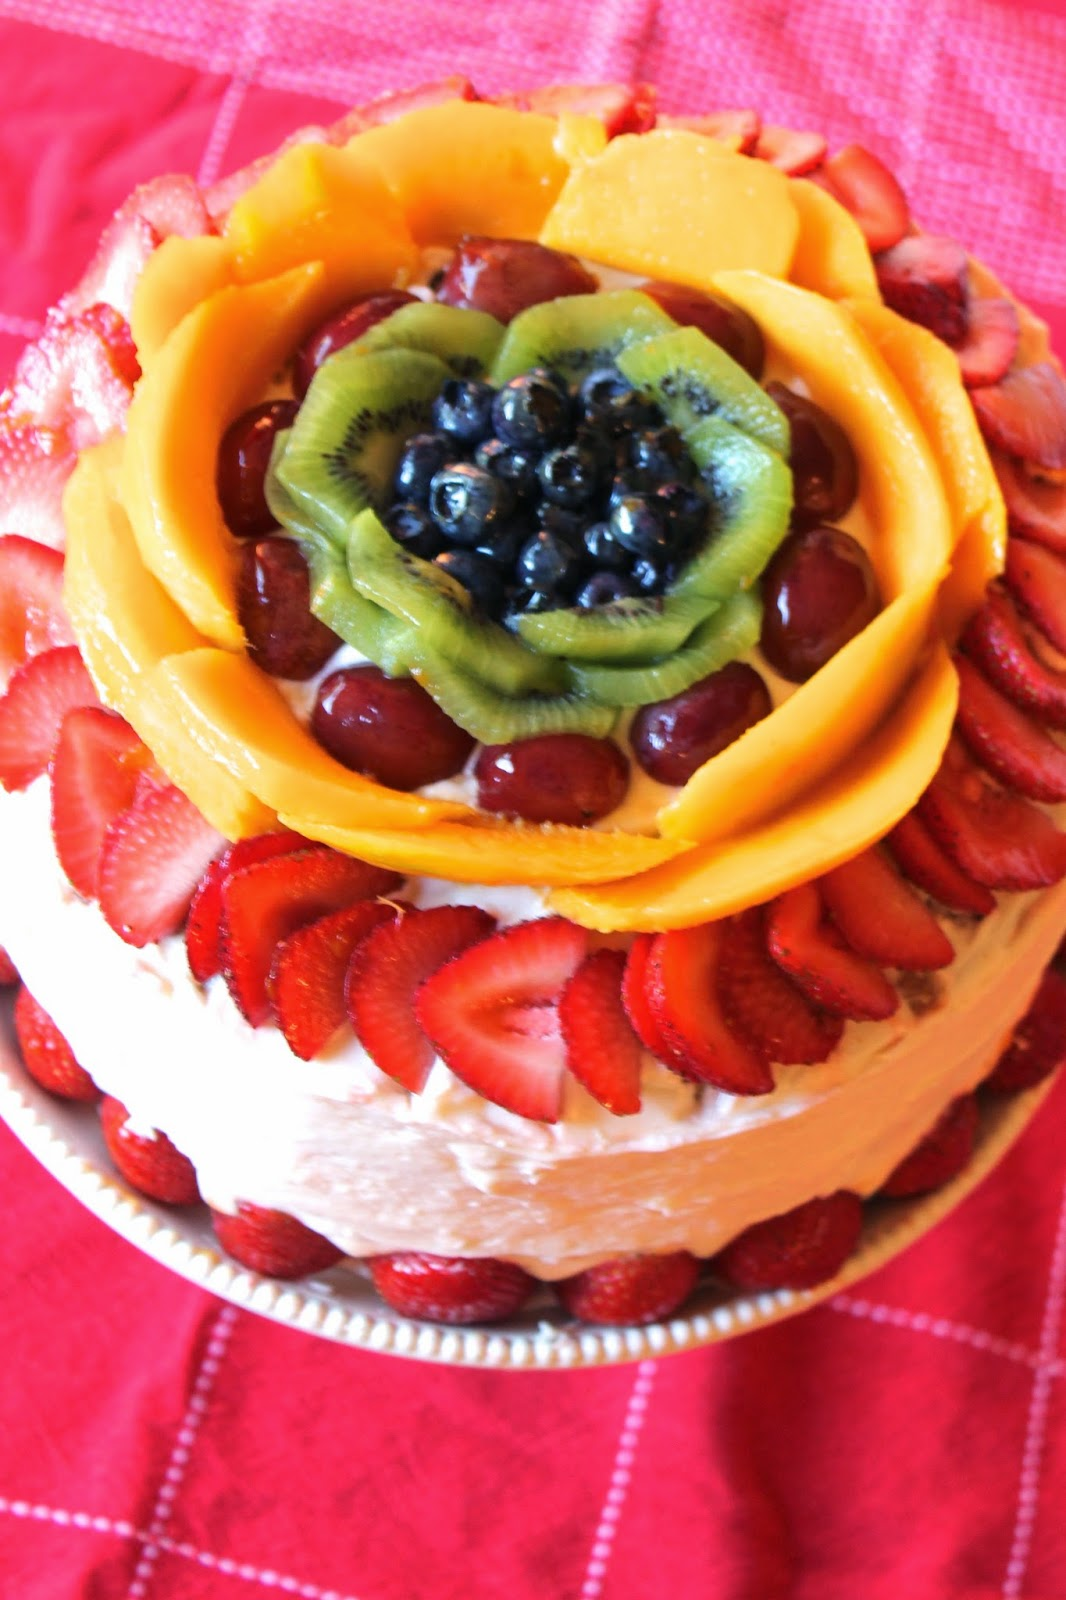 If You Have Lived In Denver Any Length Of Time, Chances Are You Know About  The Spring Fling Cake That Is Sold At The Market In Downtown Denver On  Larimer